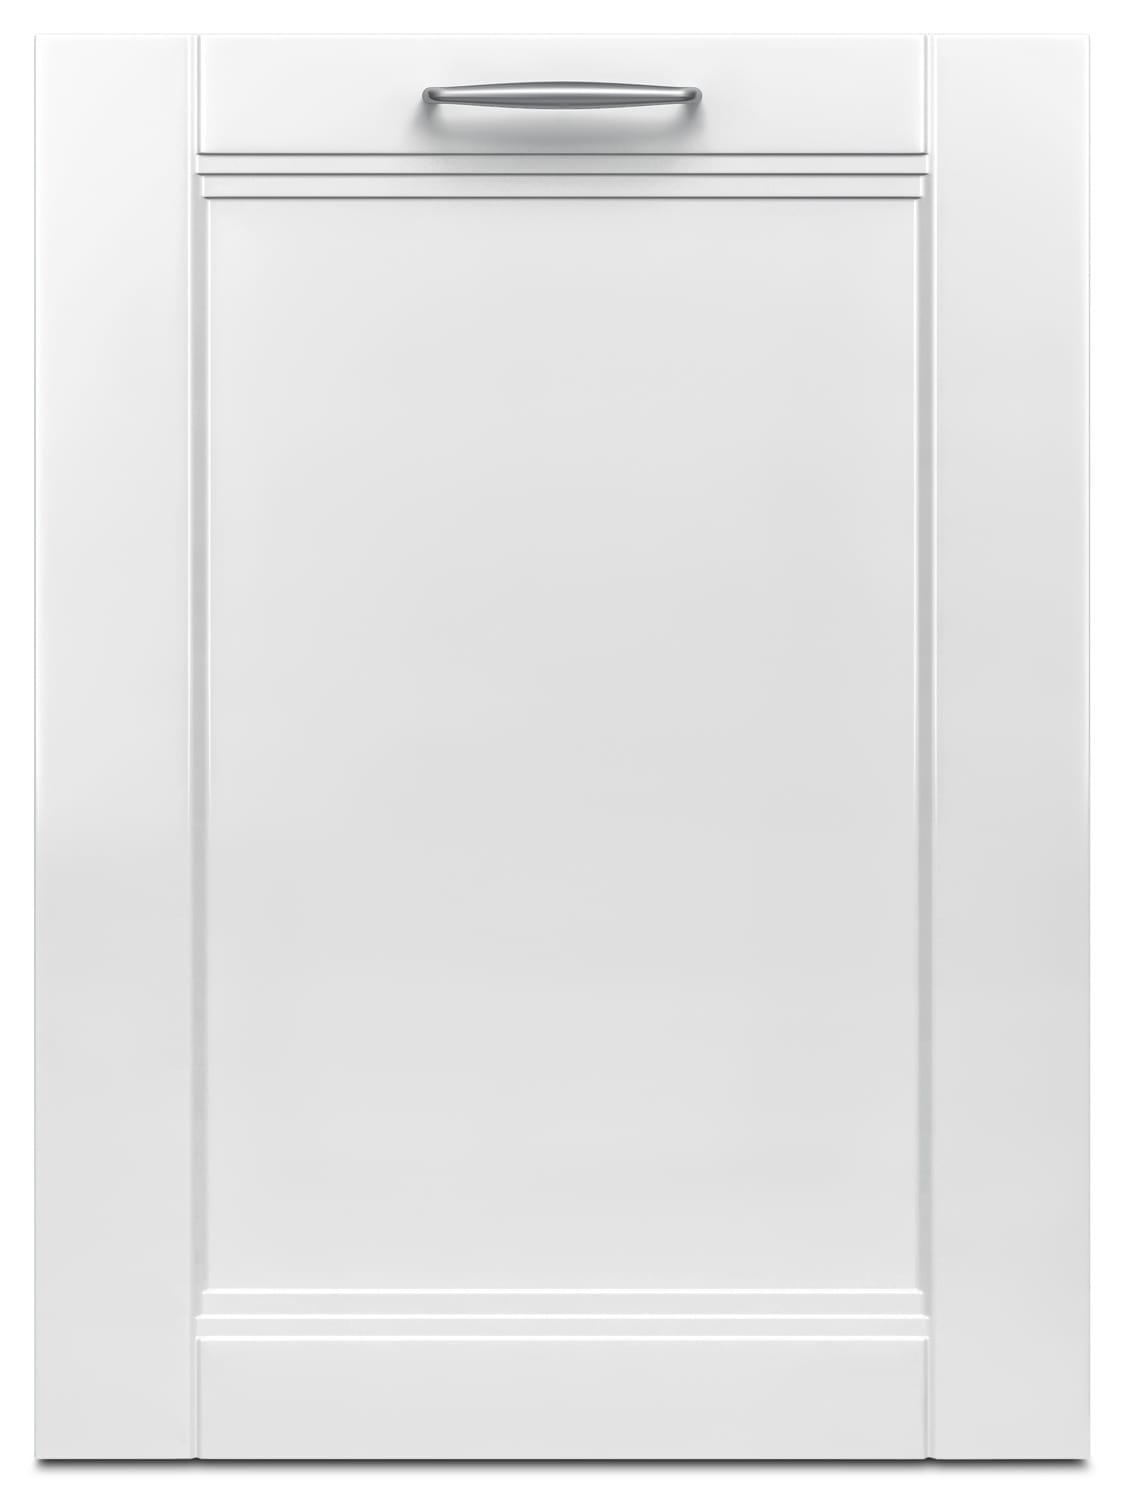 Bosch 800 Series Panel-Ready Dishwasher – SHVM78W53N